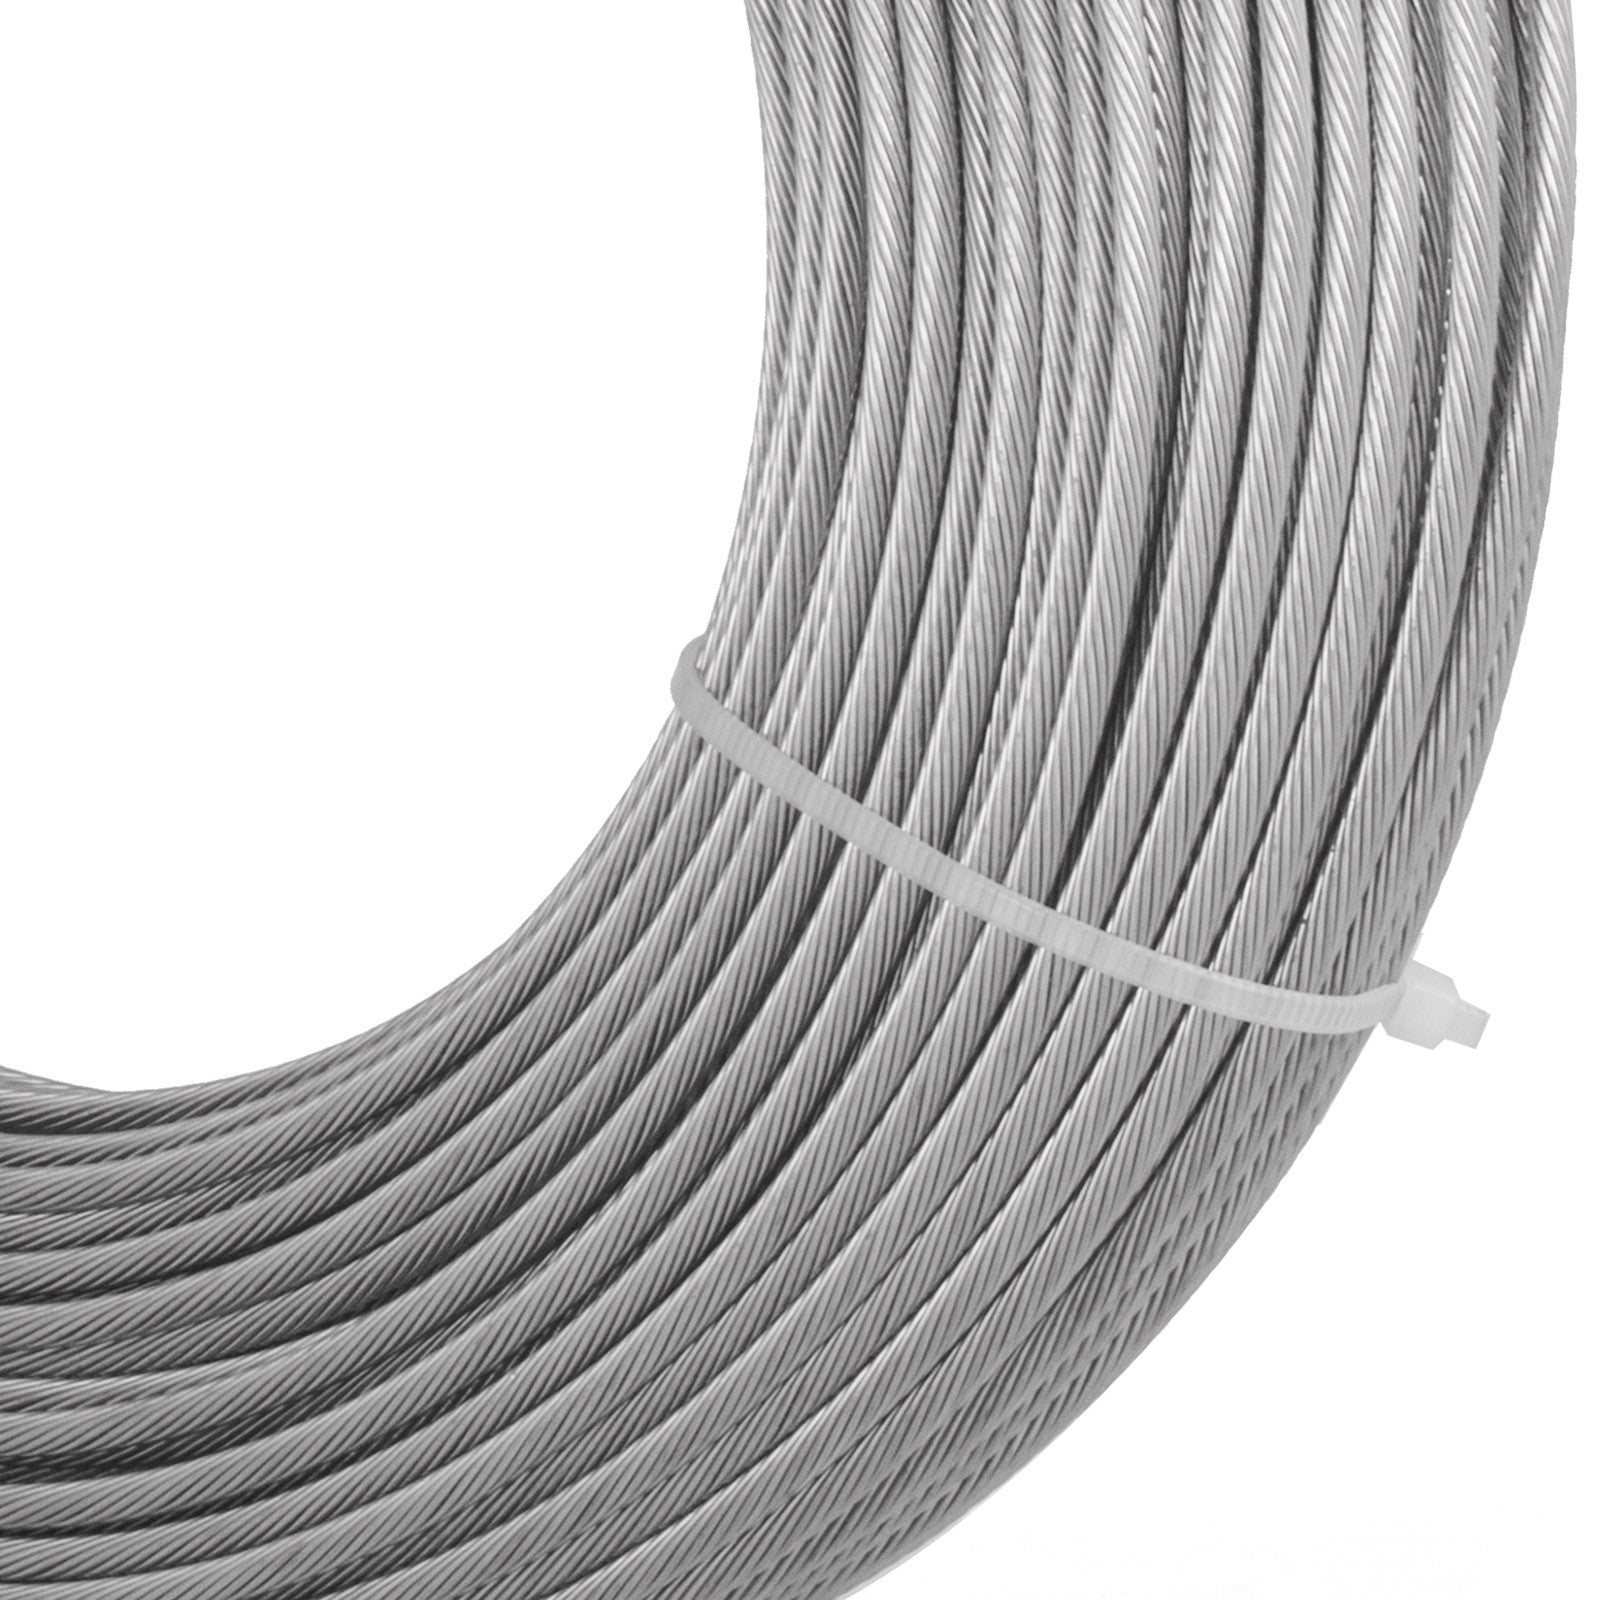 "Cable Railing T316 Stainless Steel Wire Rope Cable Strand, 1/8"", 1x19, 200 Ft"